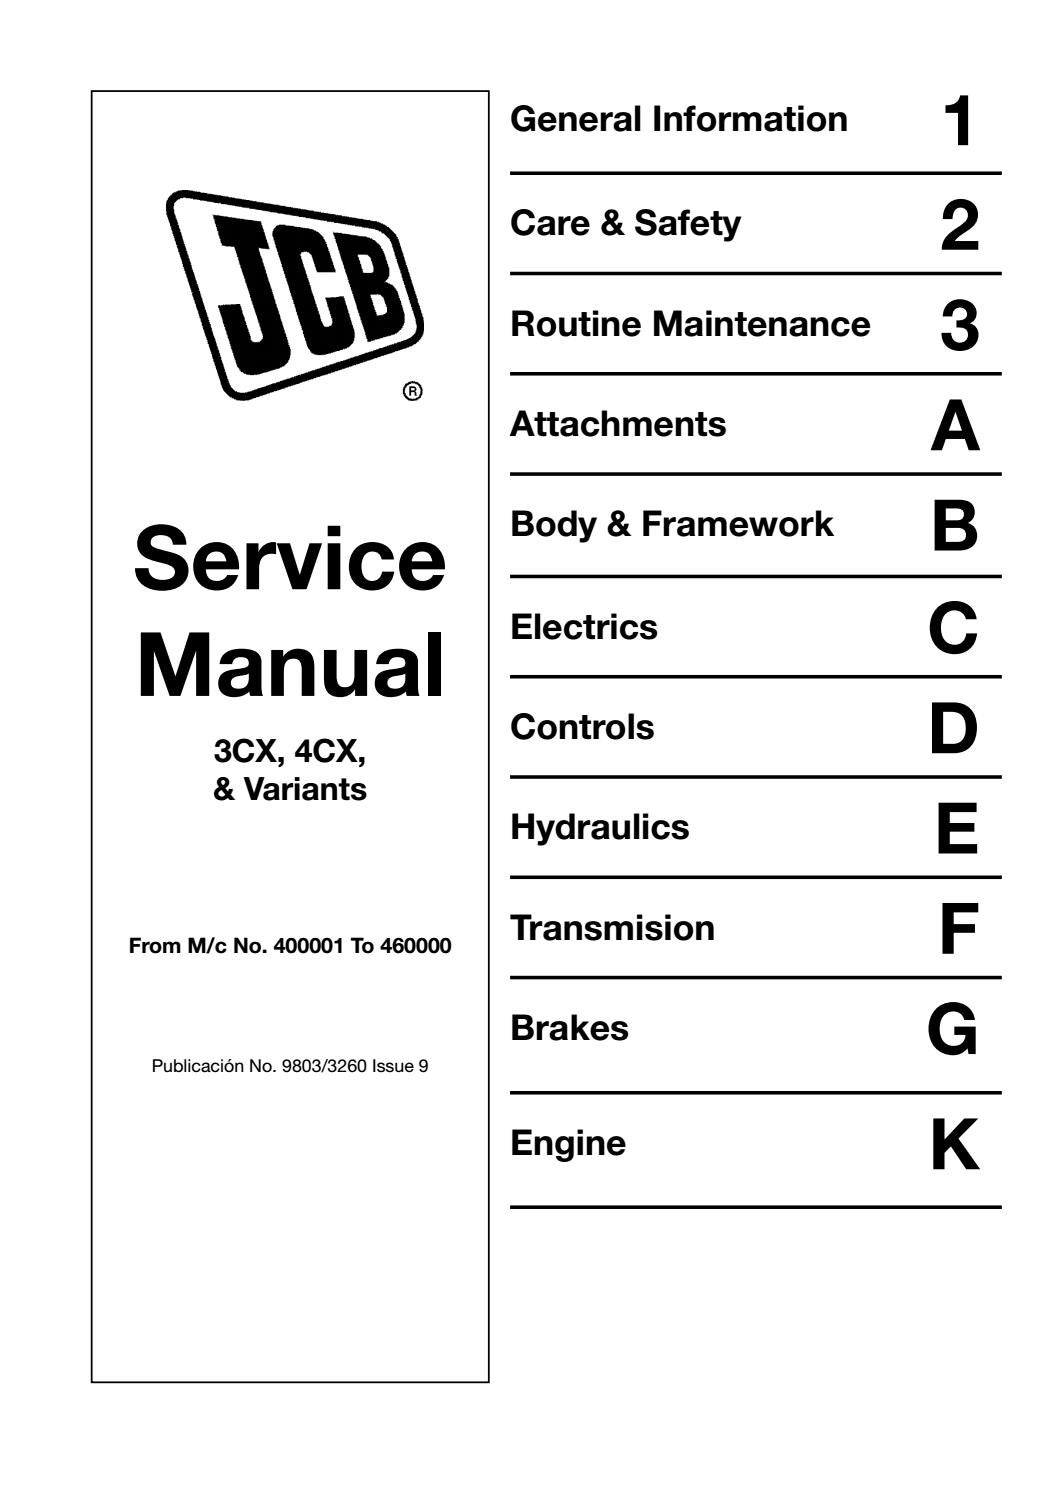 Jcb 4cx backhoe loader service repair manual (sn400001 to 4600000 ...